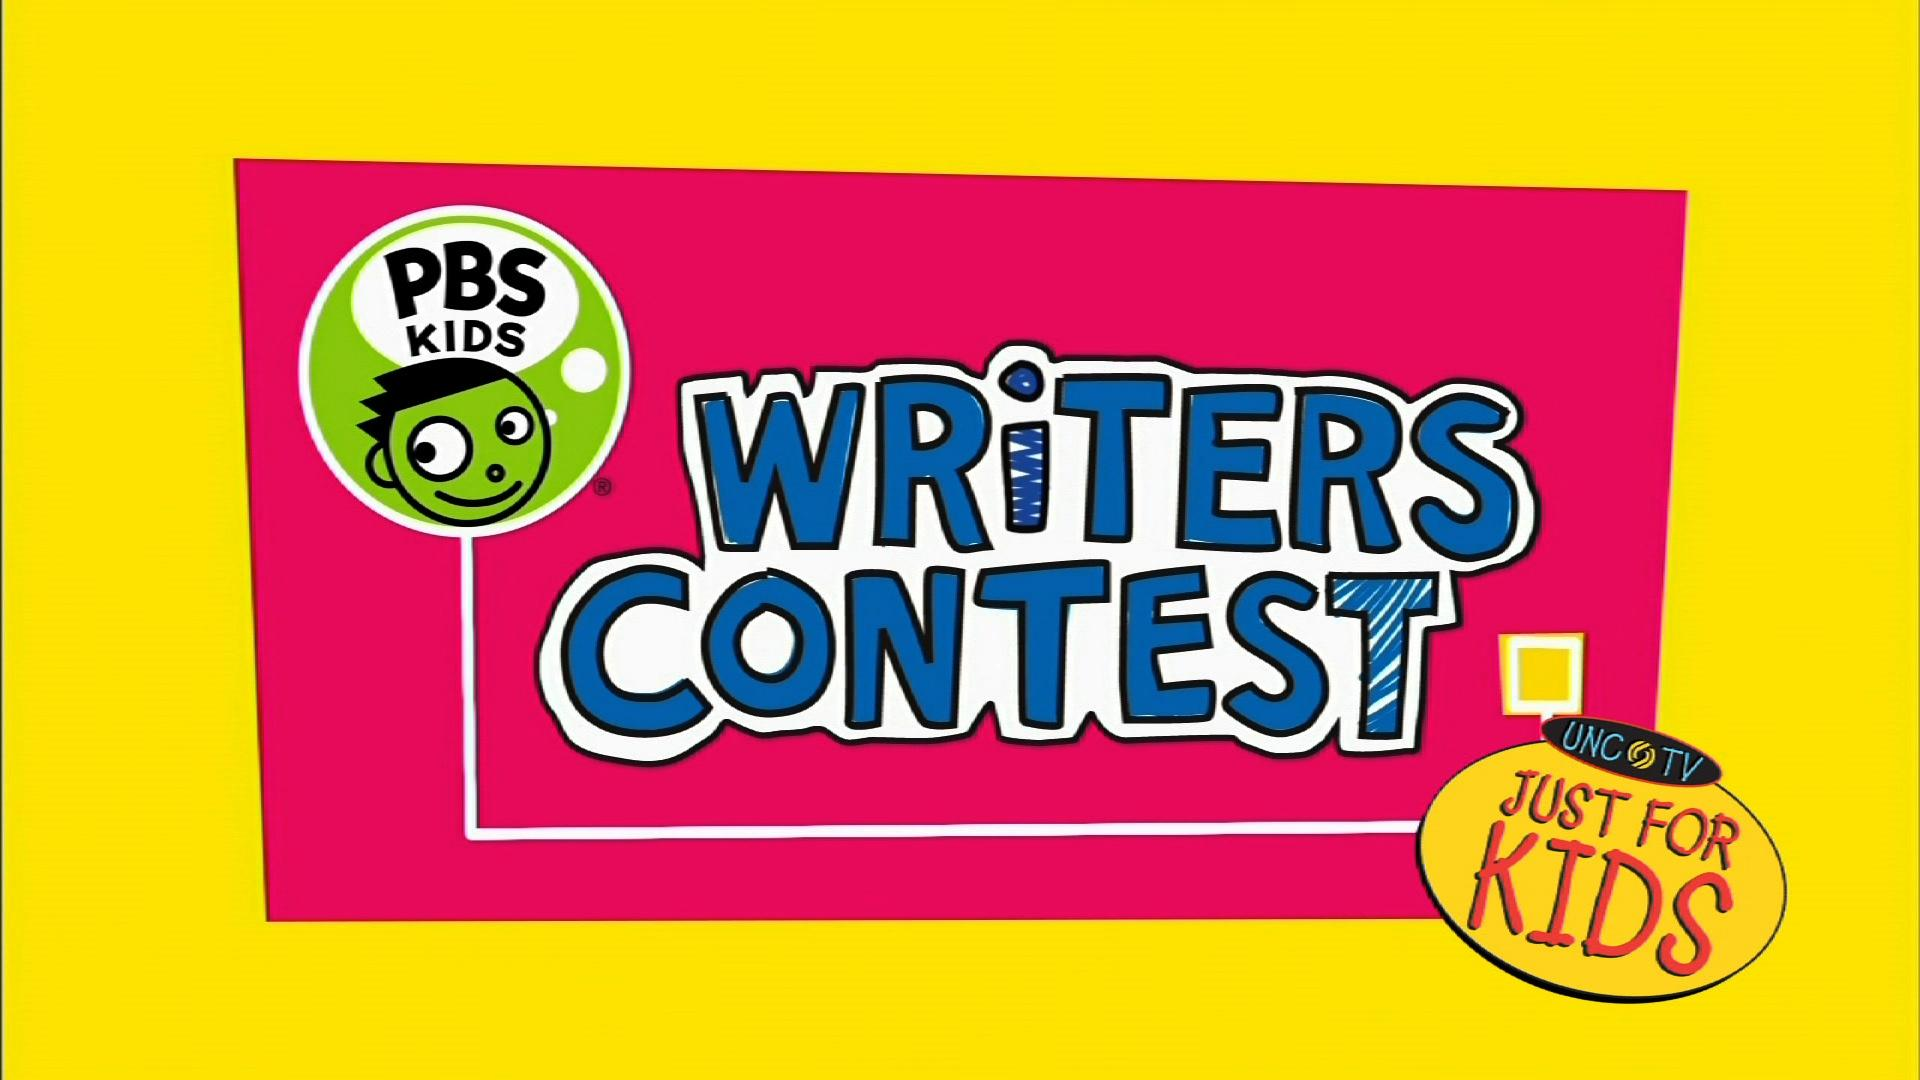 pbs writing contest Kidpub runs many writing contests each year we try to mix it up a bitsome contests are for poetry, others for essays and stories, some are a combination.